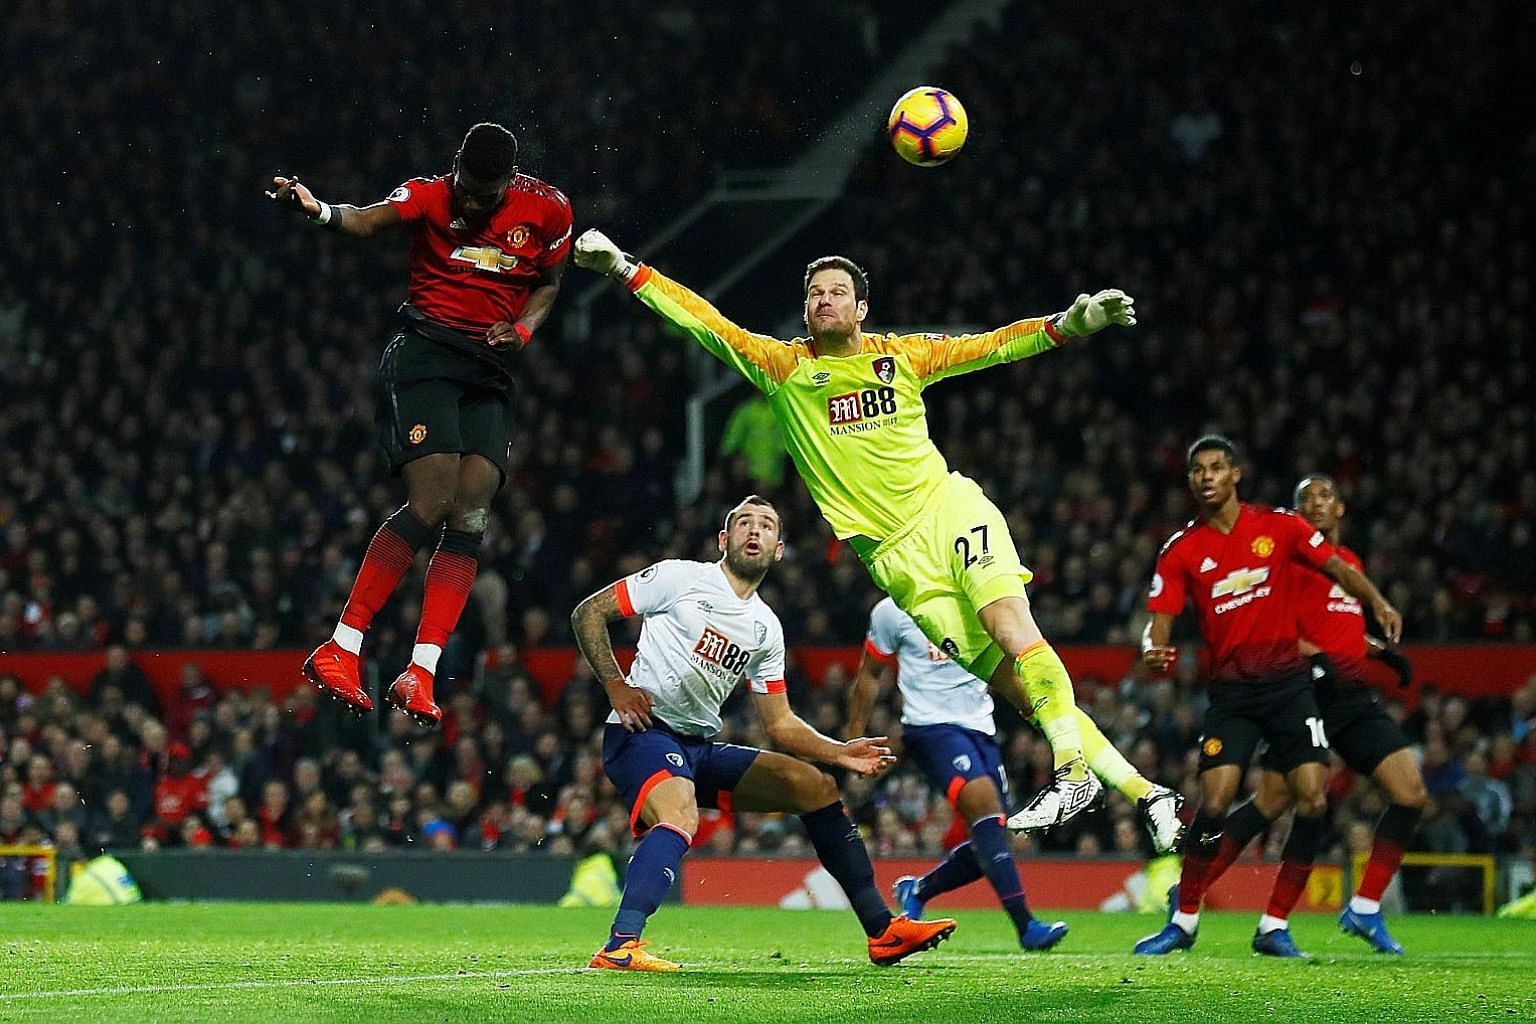 Paul Pogba scoring United's second goal past Bournemouth's Bosnian goalkeeper Asmir Begovic in their 4-1 win at Old Trafford on Sunday. He now has four goals in caretaker manager Ole Gunnar Solskjaer's first three games.